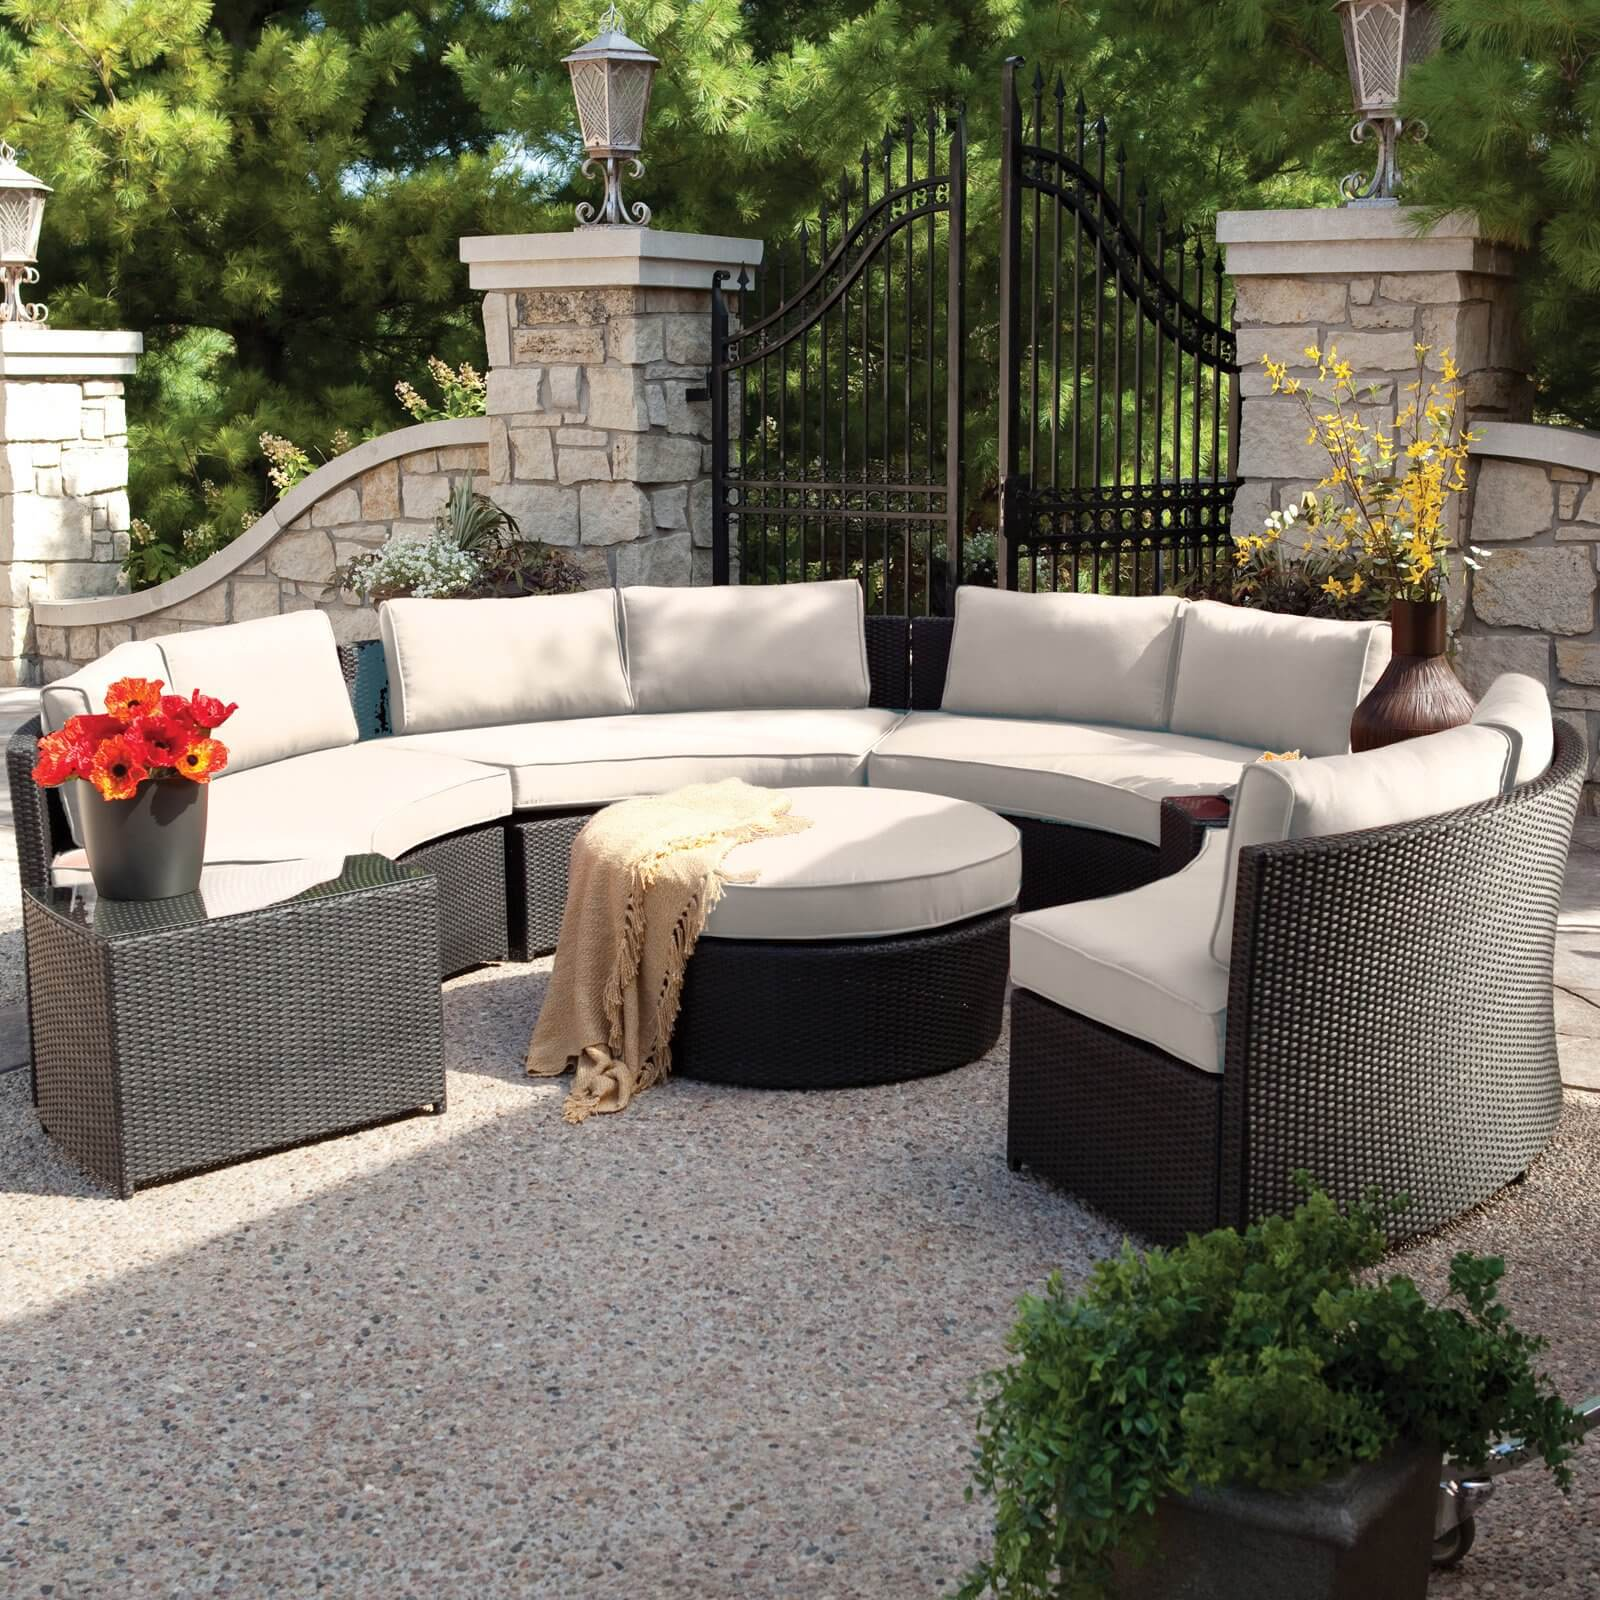 Large, Circular Conversation Patio Sectional Features High Contrast Between  Dark Resin Wicker Construction And Off .